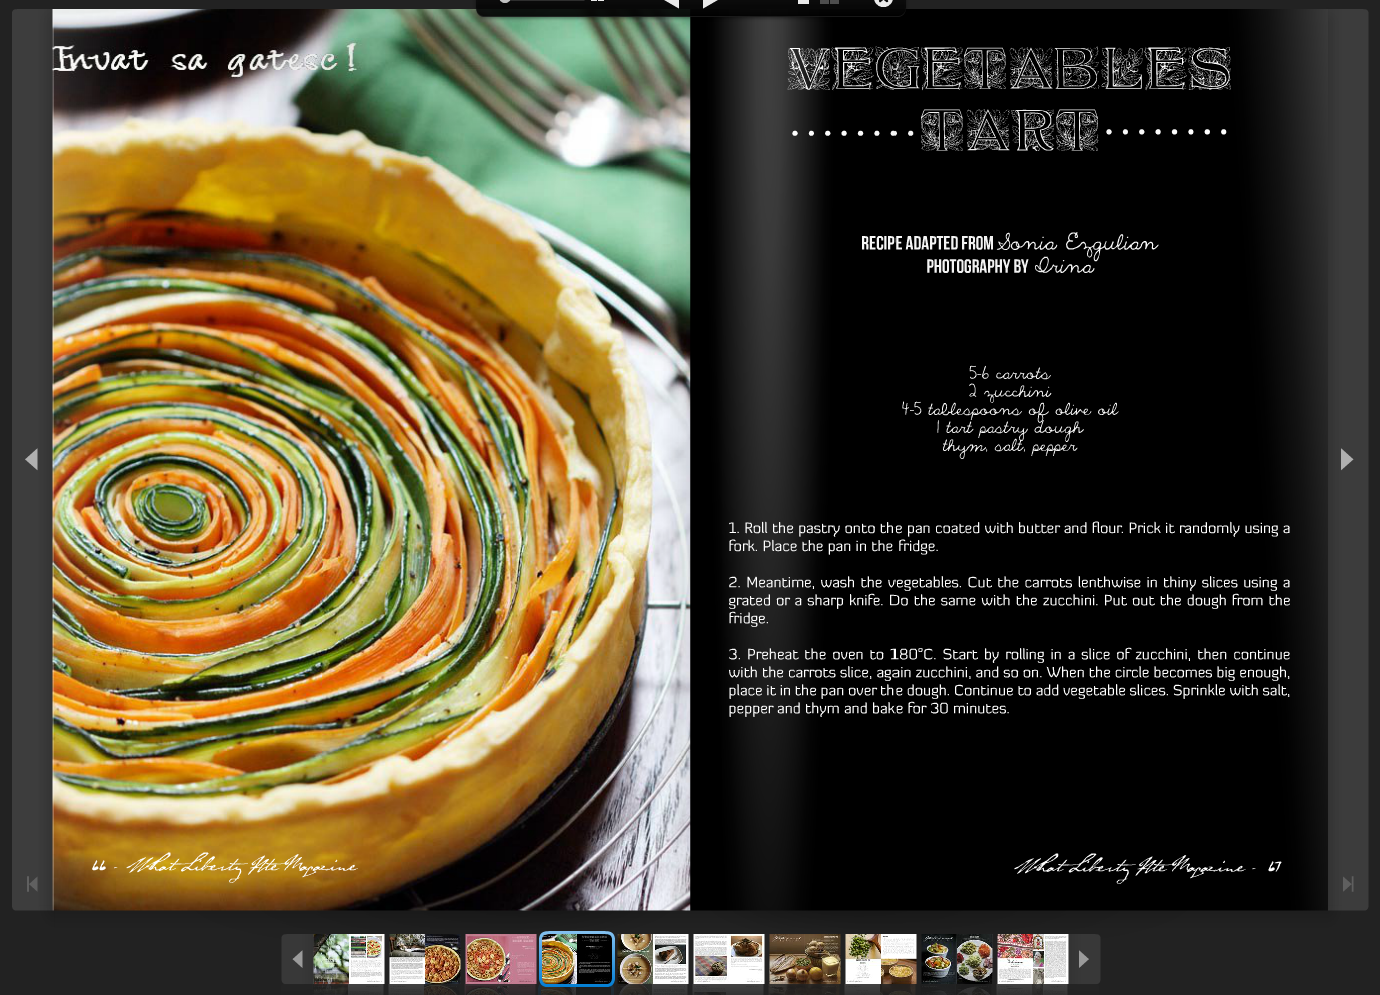 What the finished tart looks like, as made by an expert